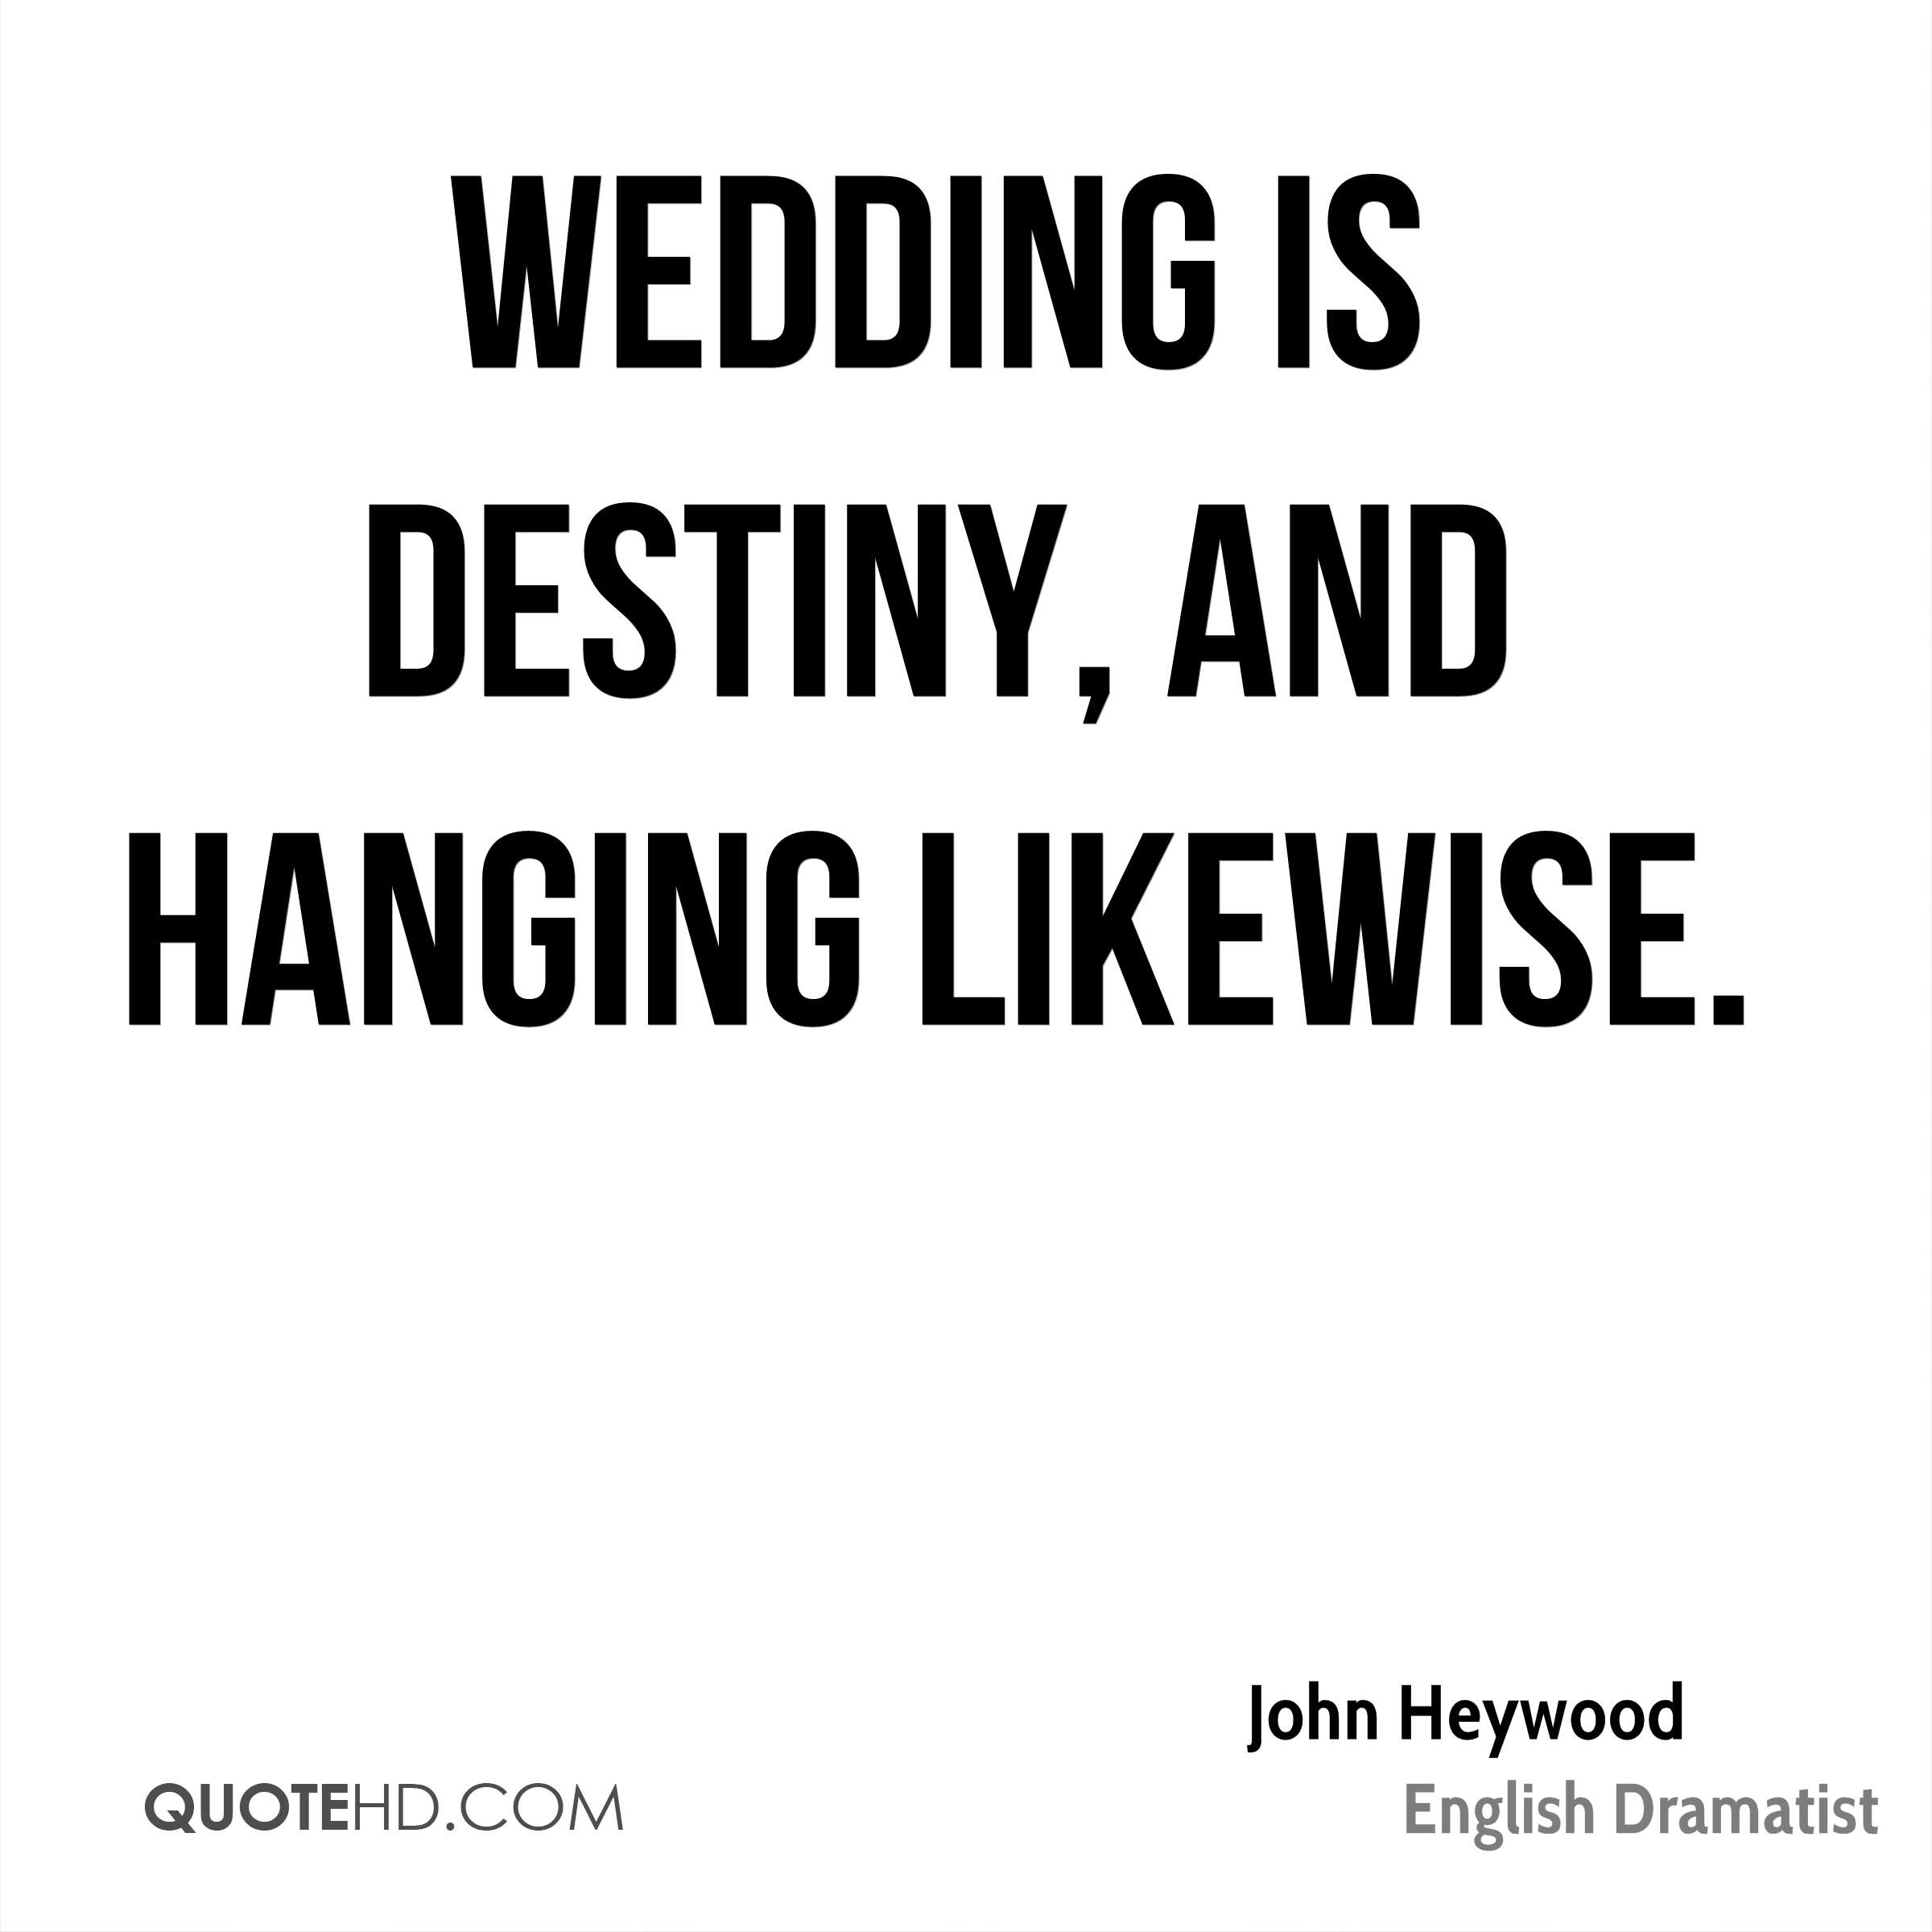 Wedding is destiny, and hanging likewise.